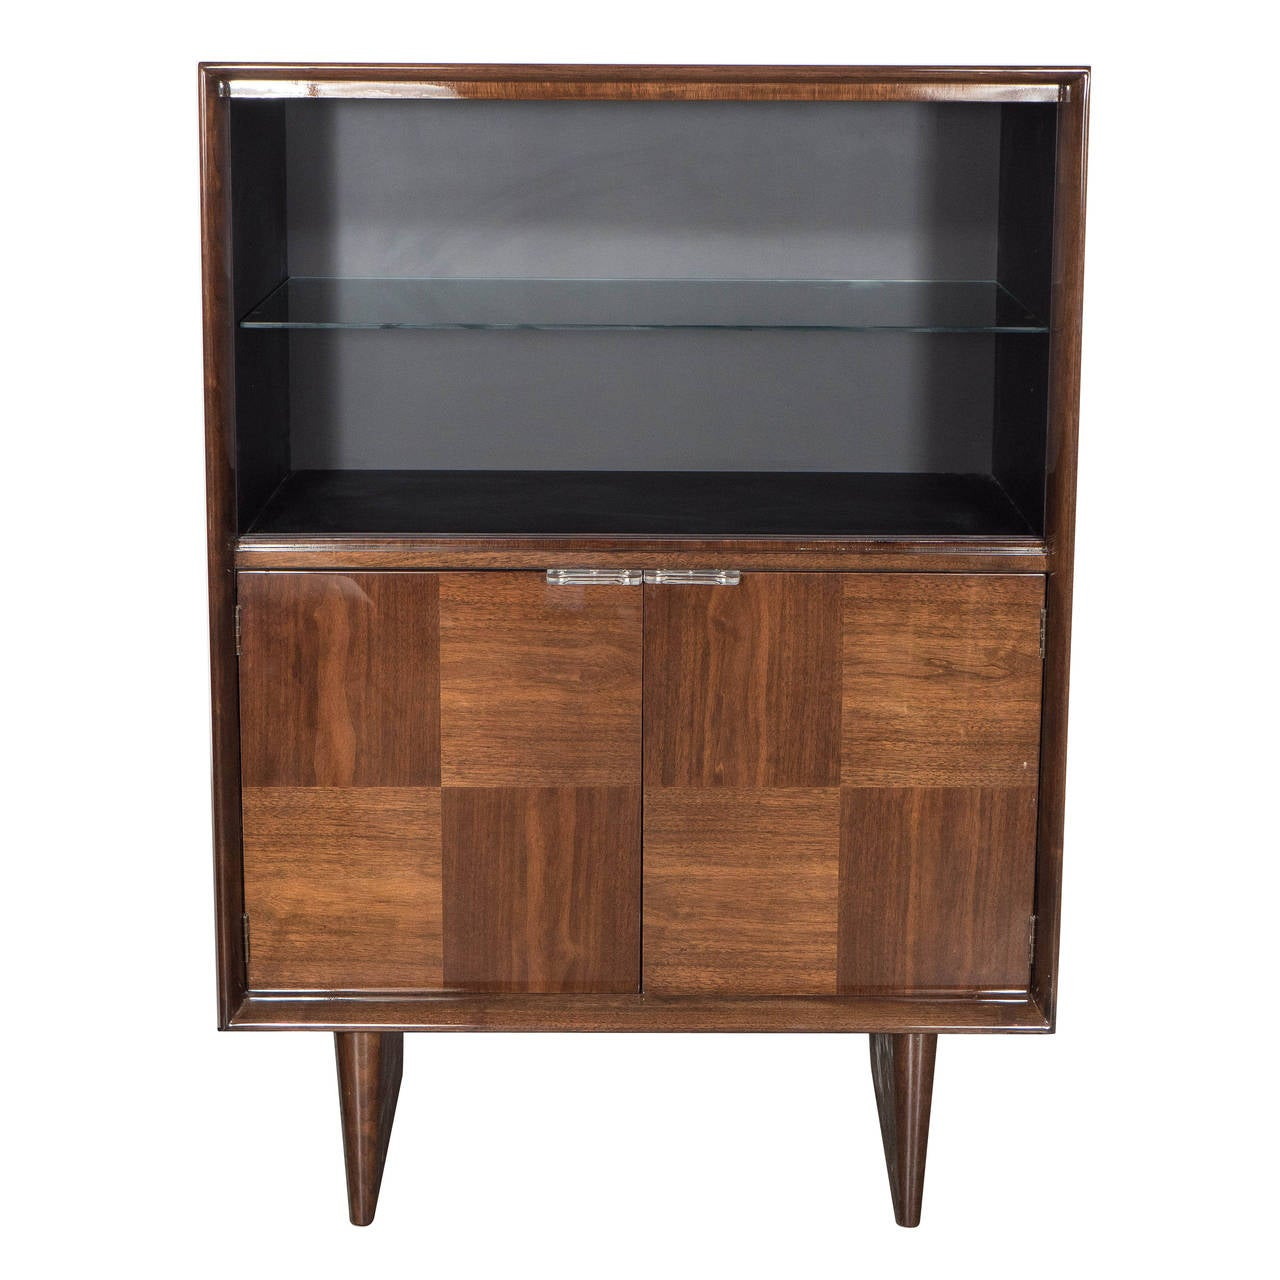 Midcentury Bookmatched Walnut Bar/Cabinet by Gilbert Rohde for Herman Miller